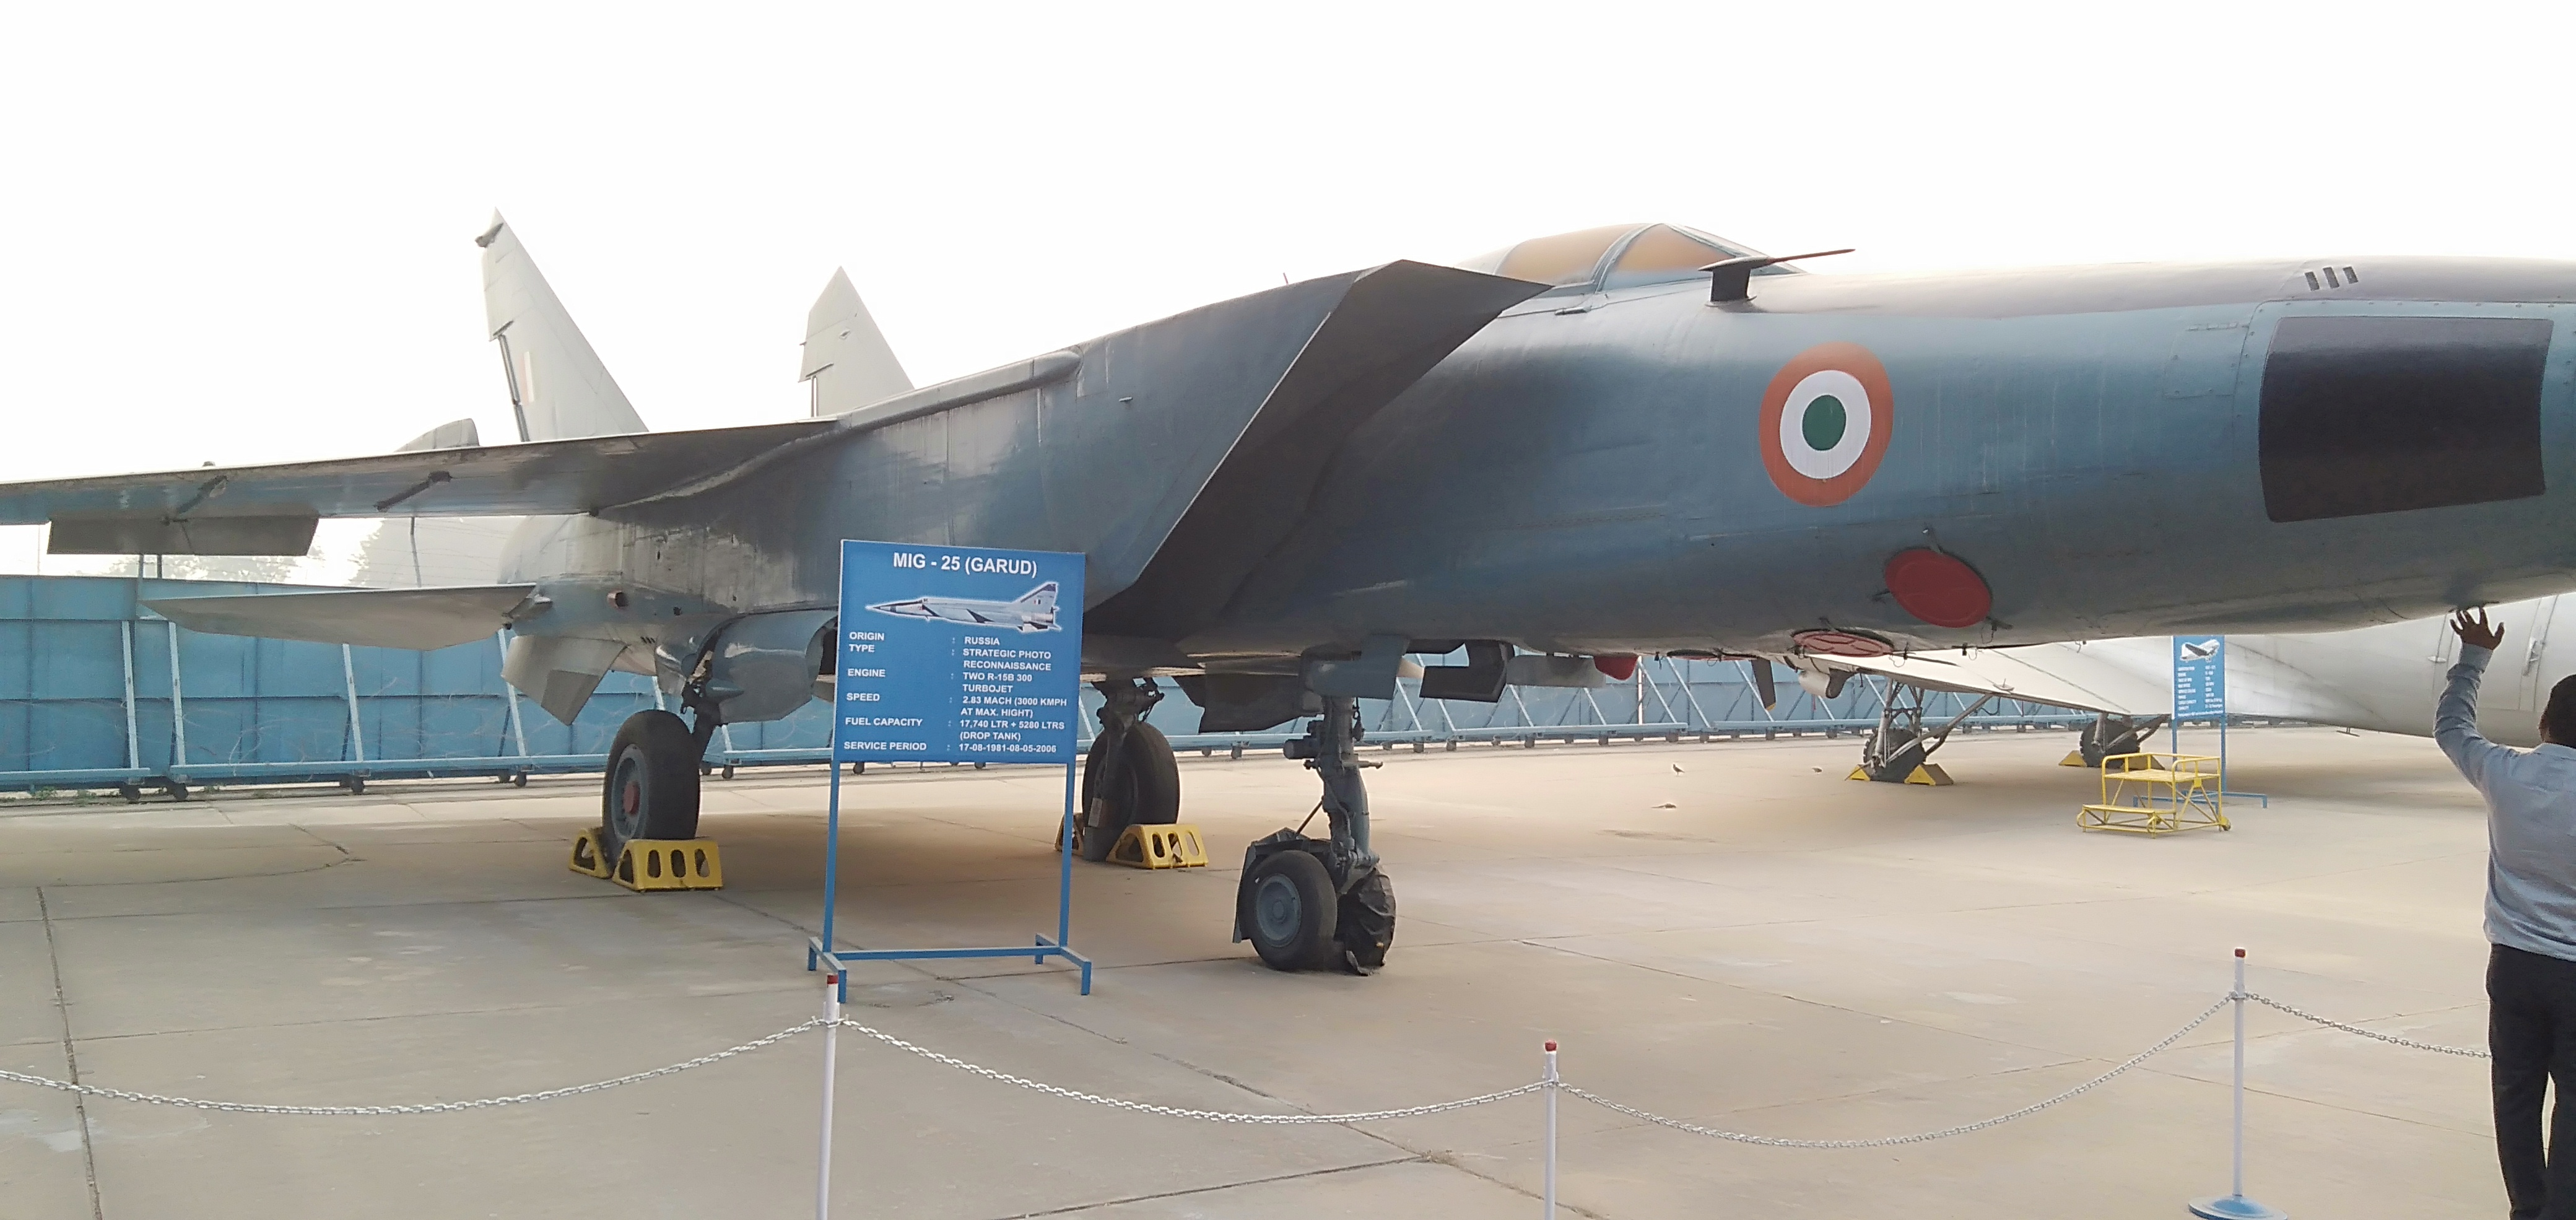 Airforce Museum Palam Delhi - Timings, Address, and Things